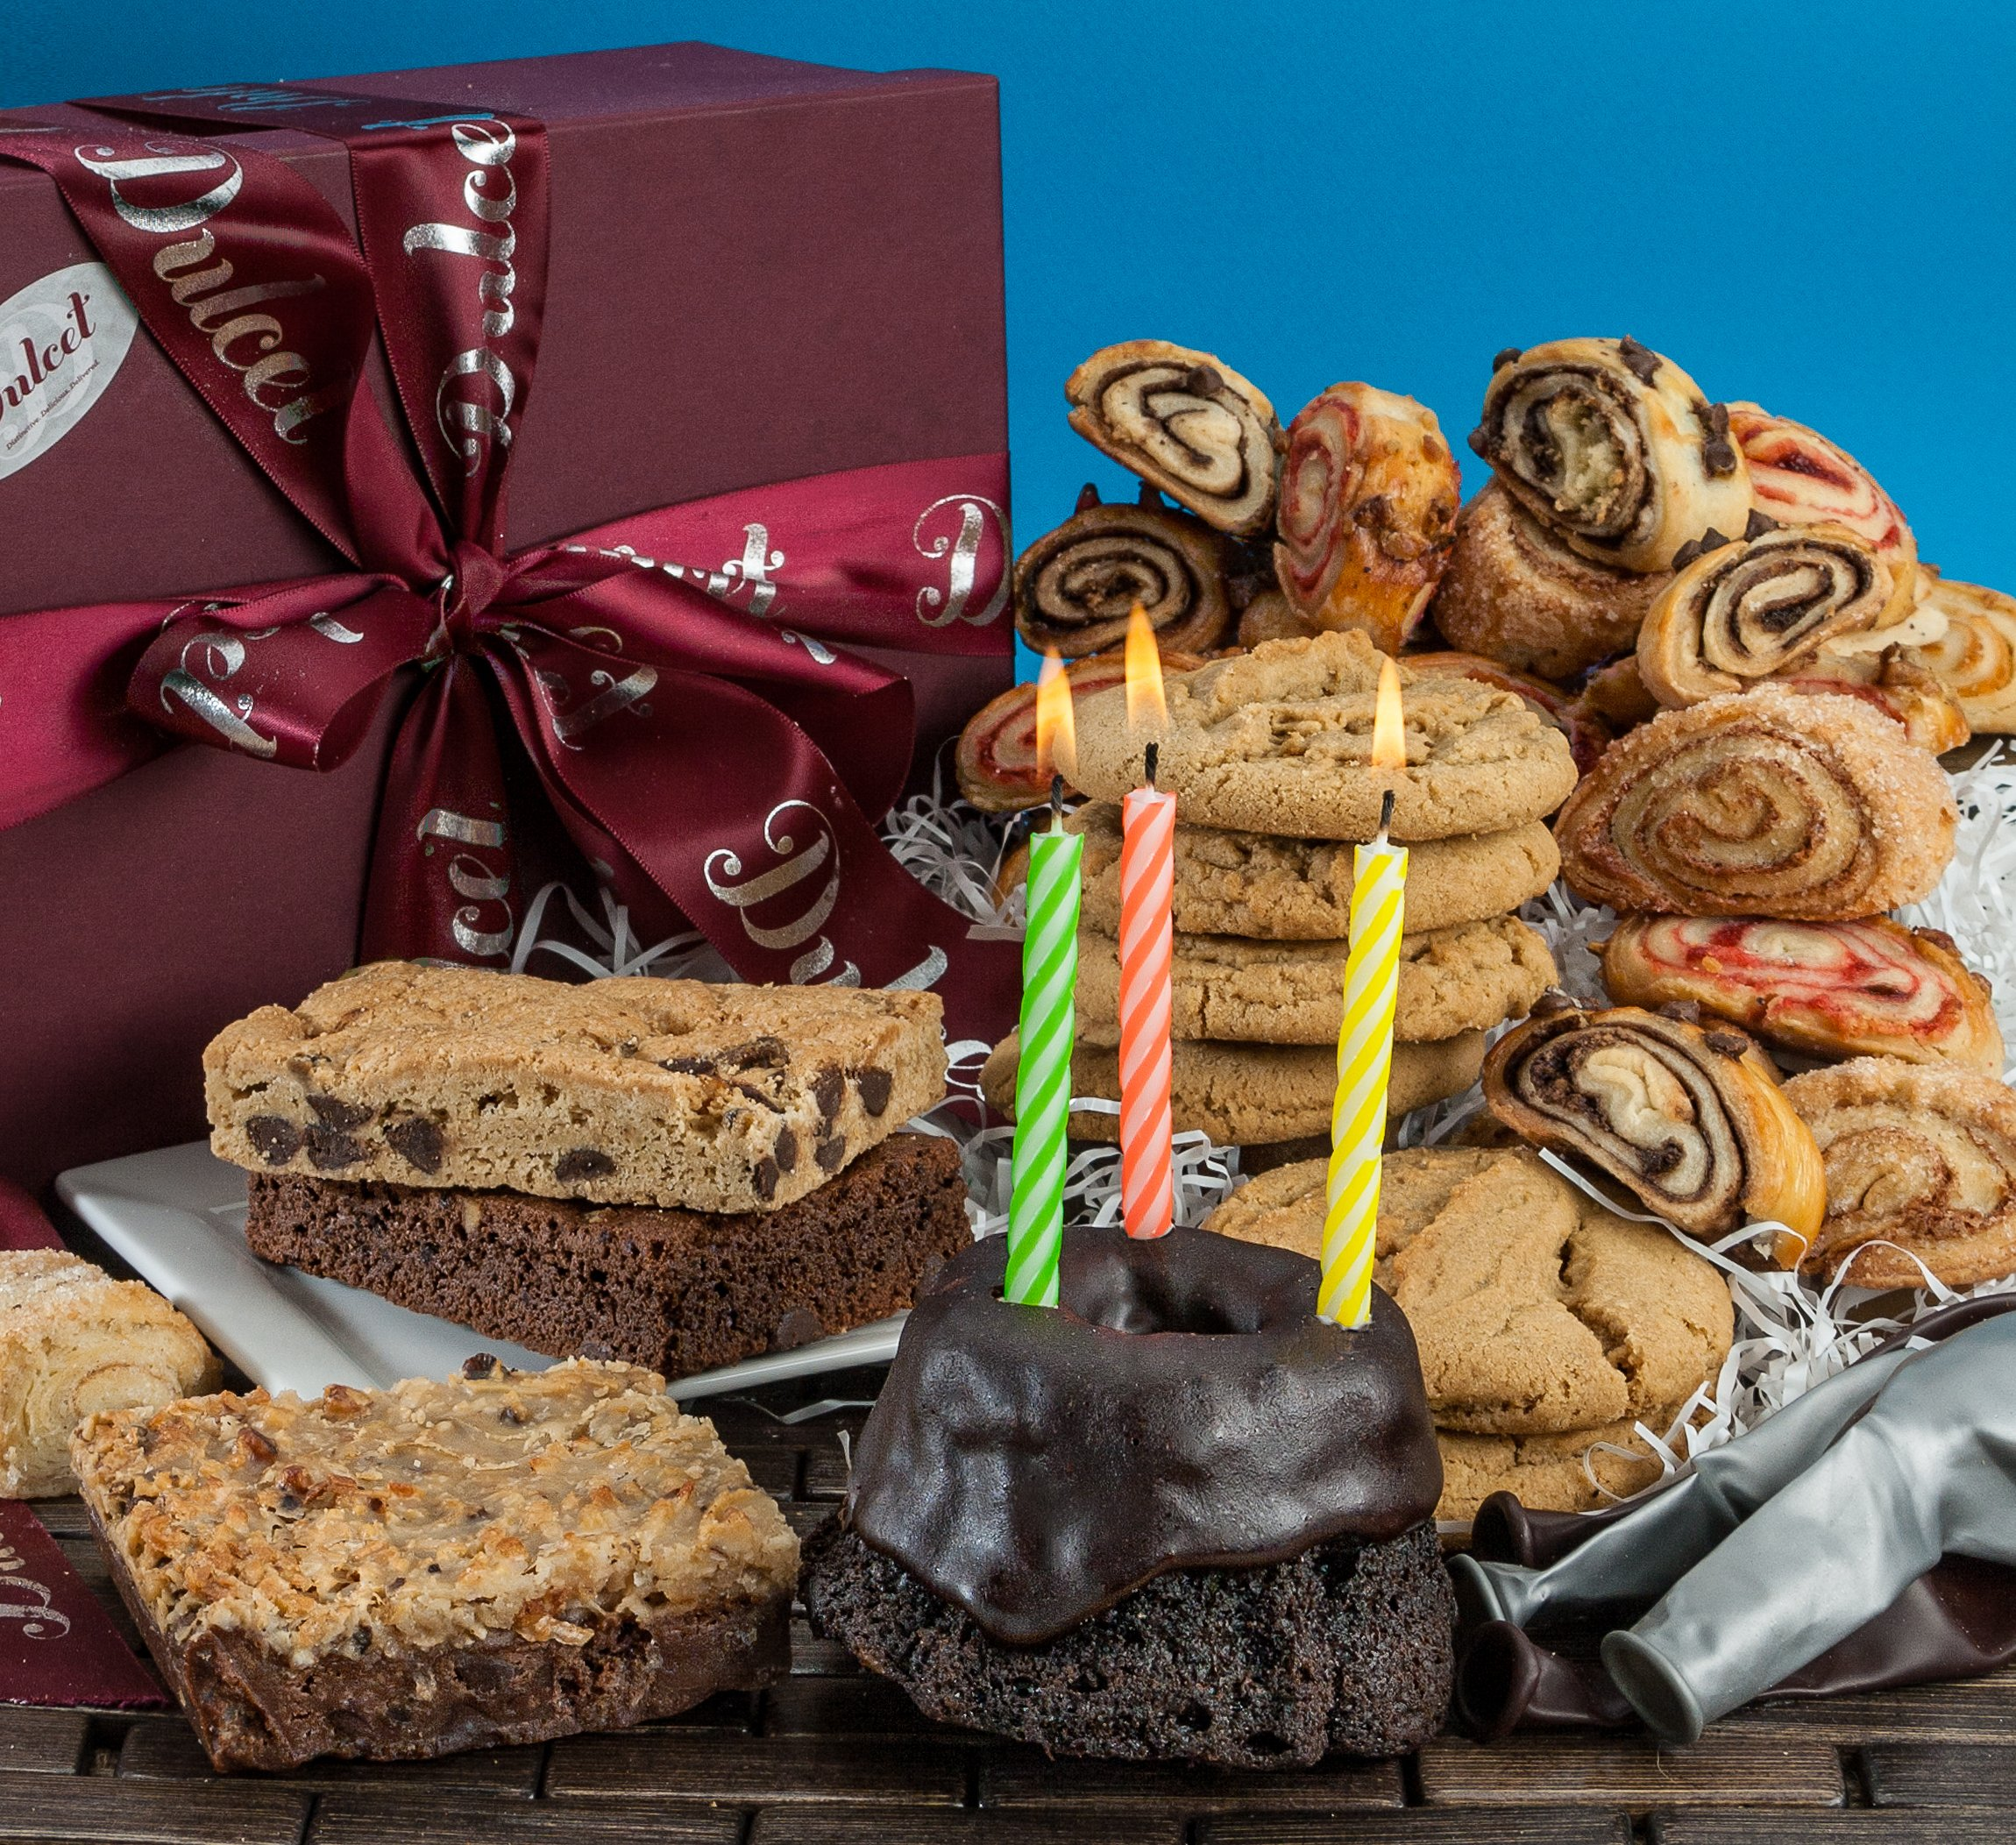 Dulcet Gift Baskets Happy Birthday Fresh Cake Collection with Candles for Men-Women-kids-Family-college student-Friends Dad-Mom, with Prime Delivery